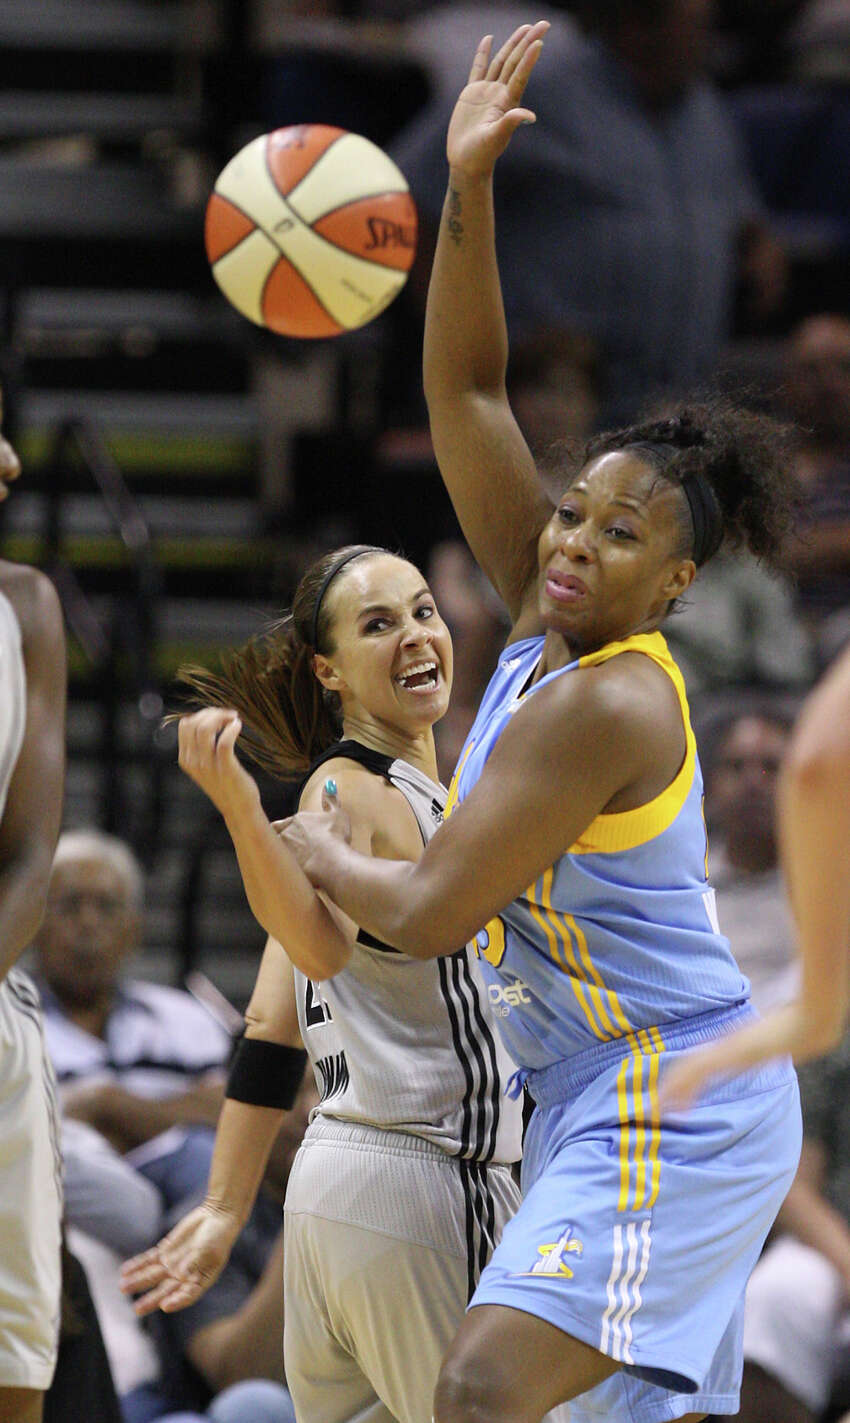 San Antonio Silver Stars' Becky Hammon tries to reach for the ball as Chicago Sky's Le'coe Willingham block her during the second half at the AT&T Center, Wednesday, May 30, 2012. The Silver Stars lost their season opener, 77-63.